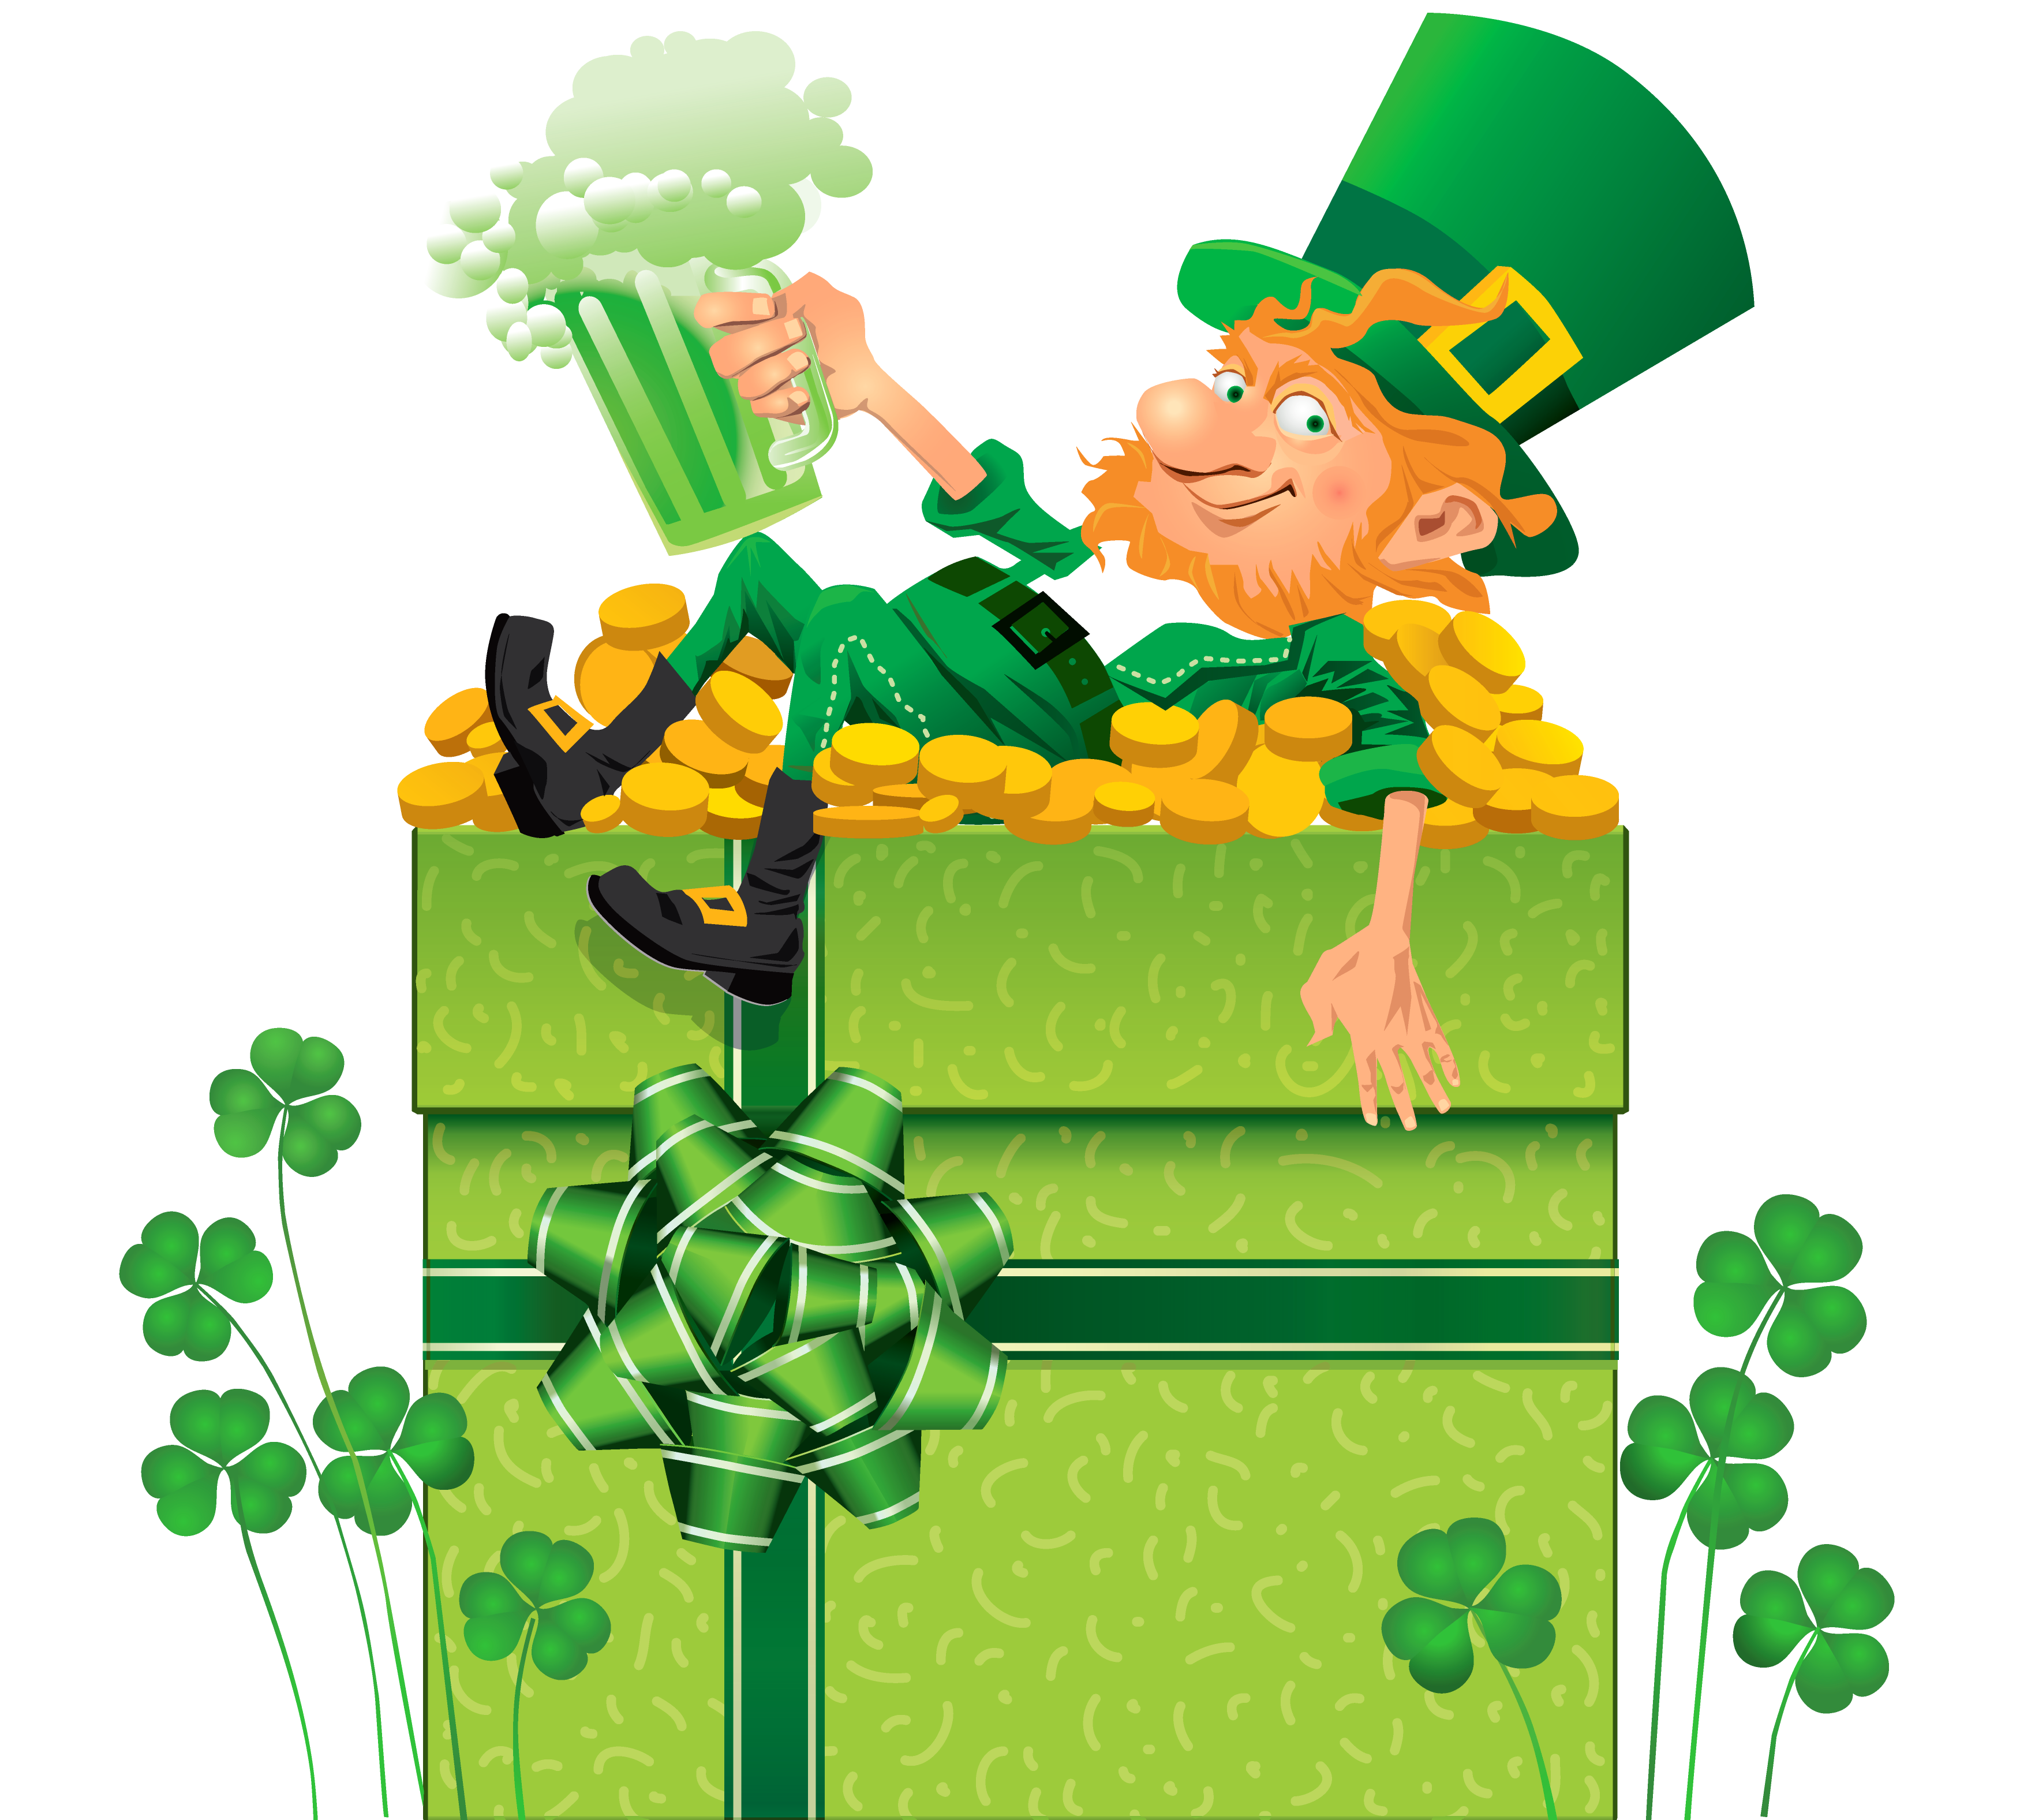 Clipart free st patricks day. Decor with shamrocks and